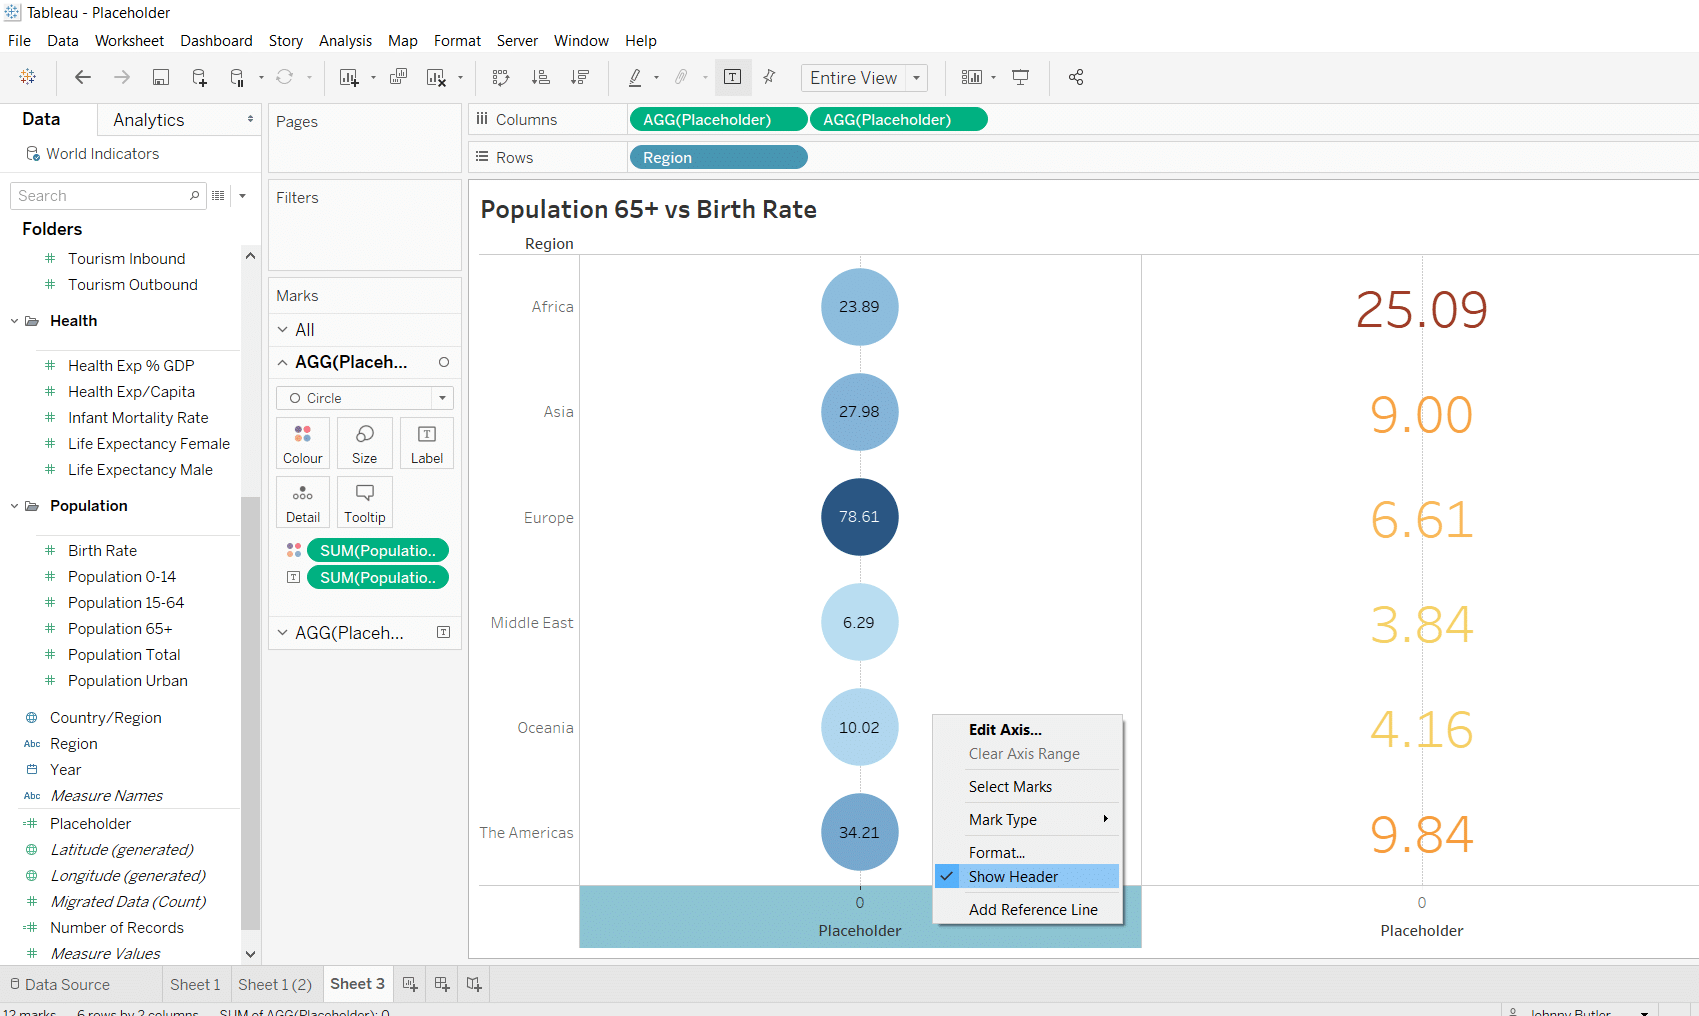 How do I create Placeholders in Tableau & What can I do with them?